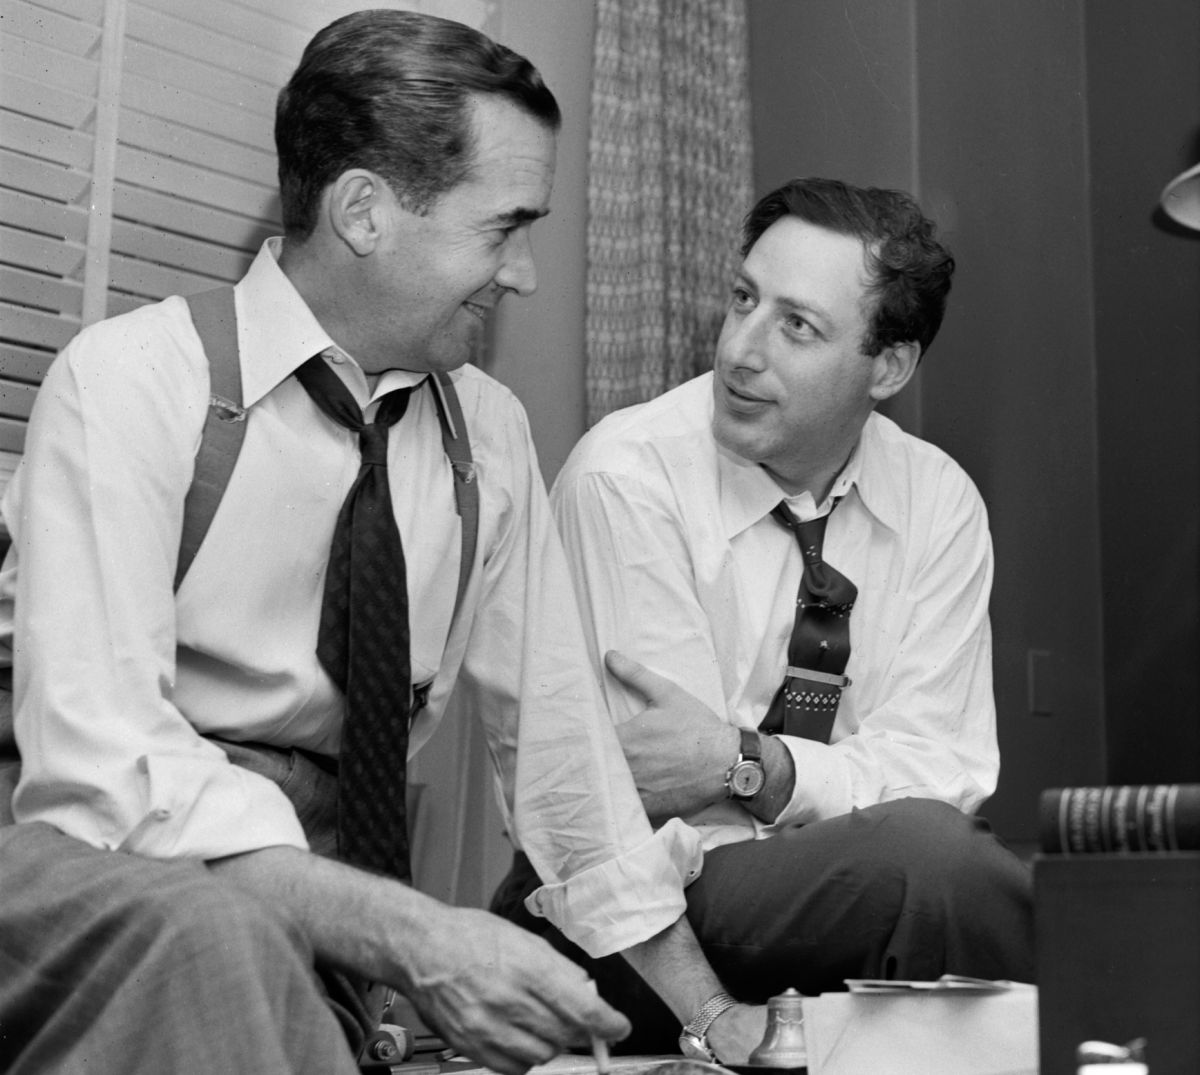 Journalist Edward R. Murrow (left) and producer Fred Friendly, in their CBS office in New York, Oct. 15, 1954. (Photo by CBS Photo Archive/Getty Images)